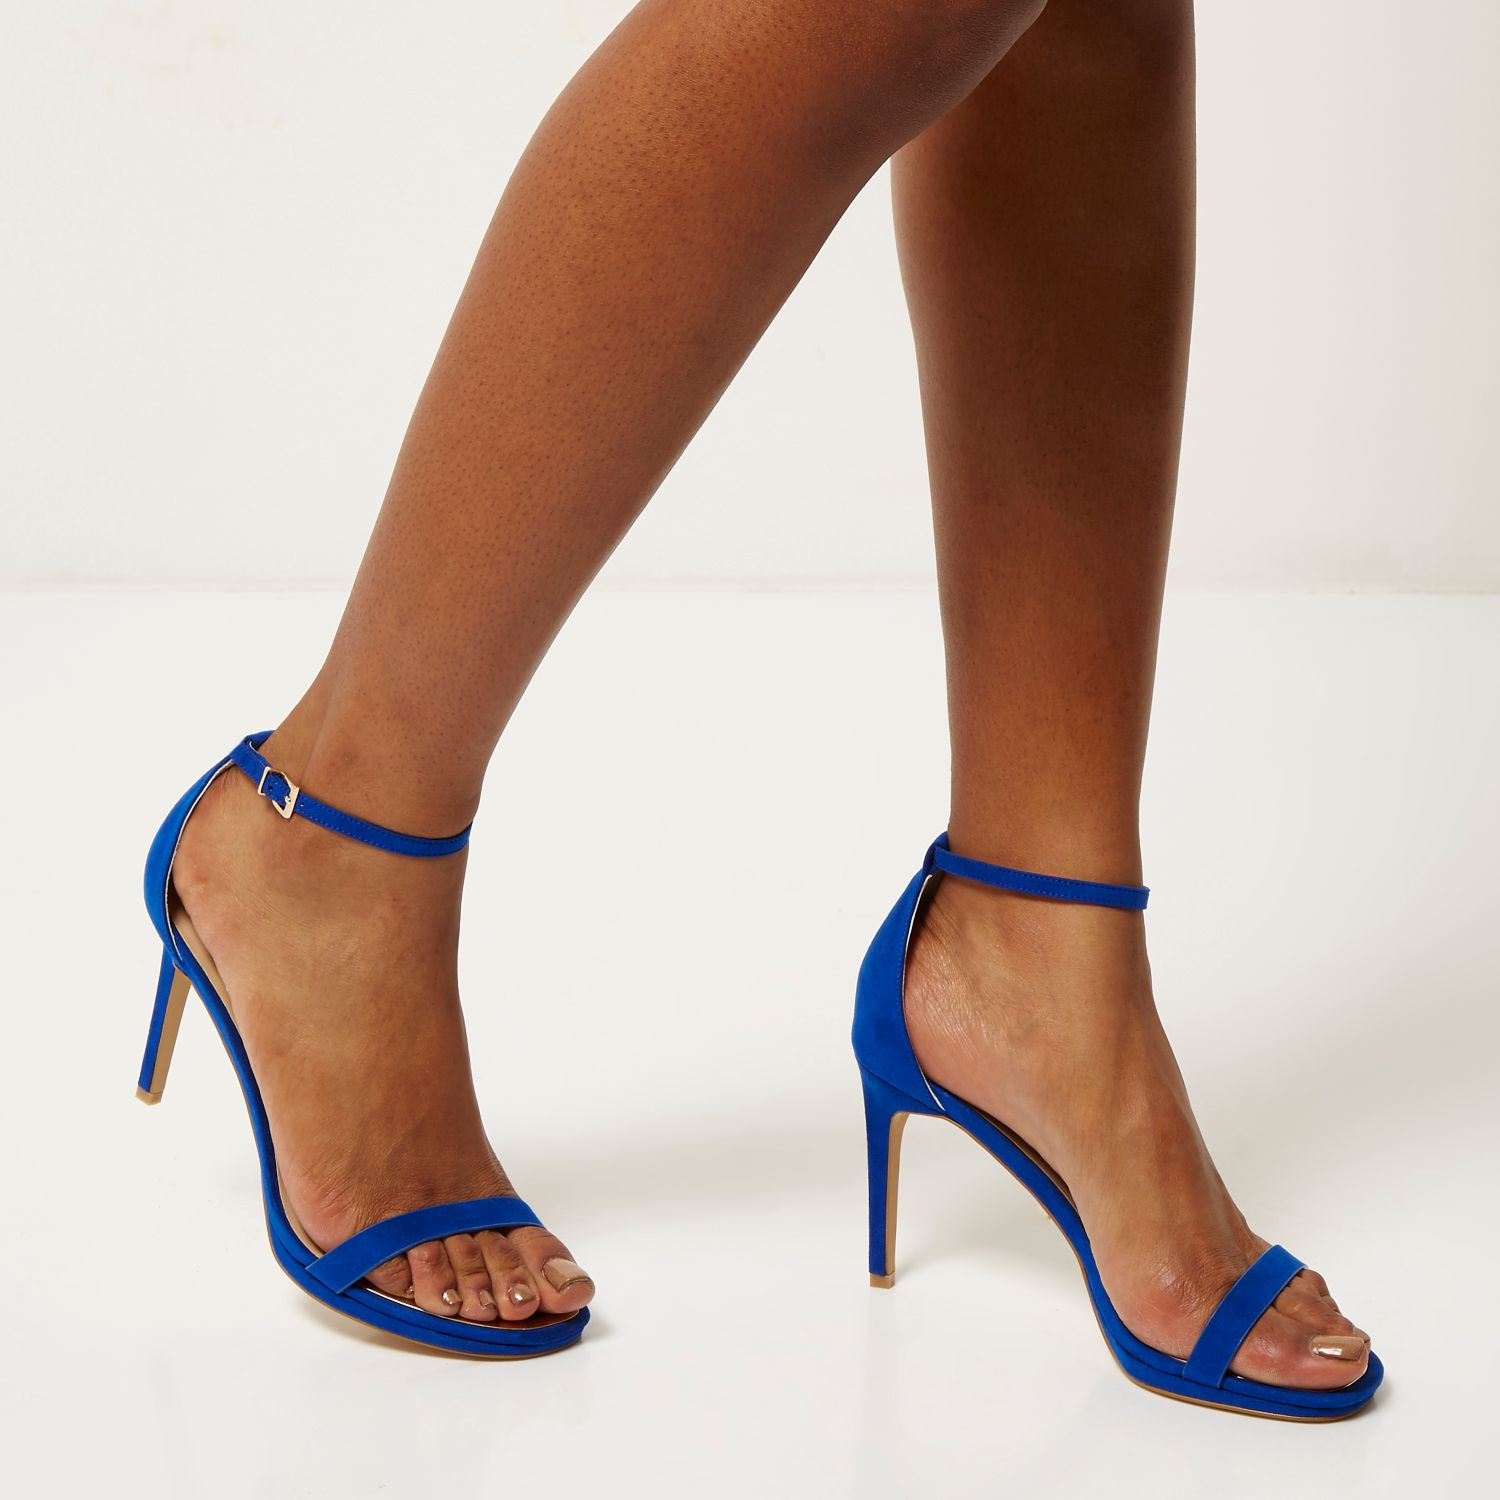 Blue Sandals Heels - Qu Heel